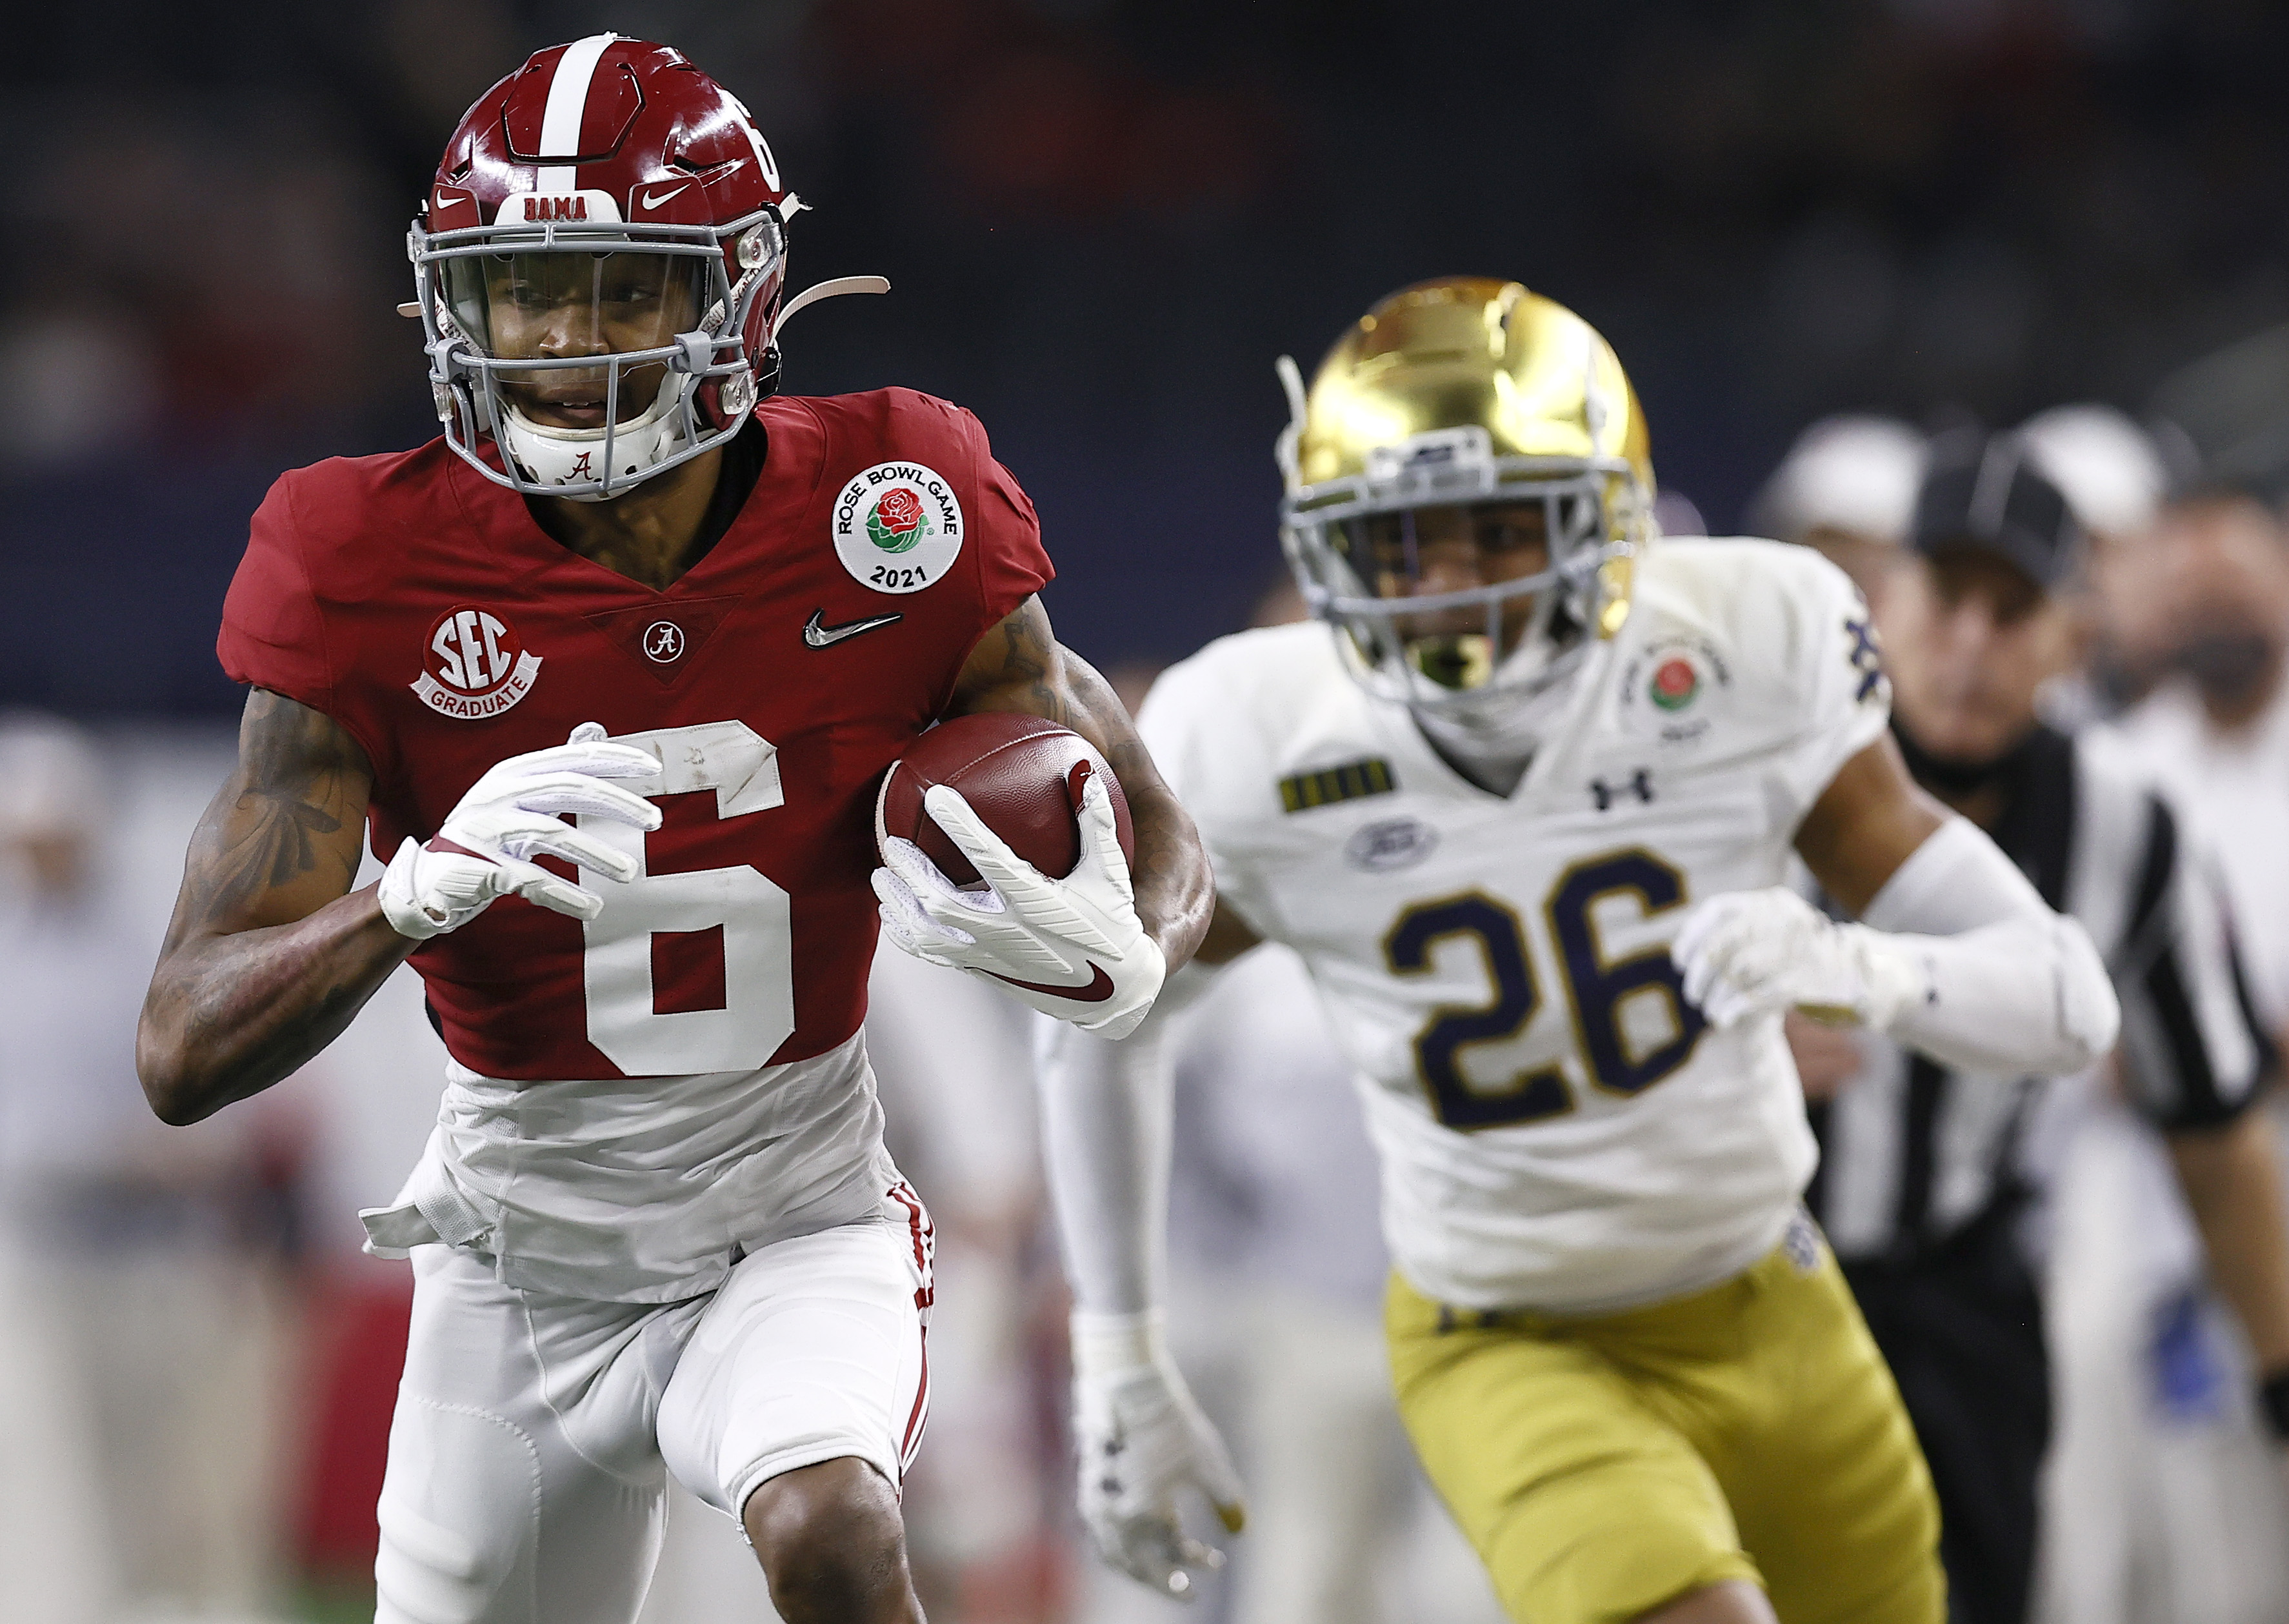 The CFP Semifinal presented by Capital One - Alabama v Notre Dame